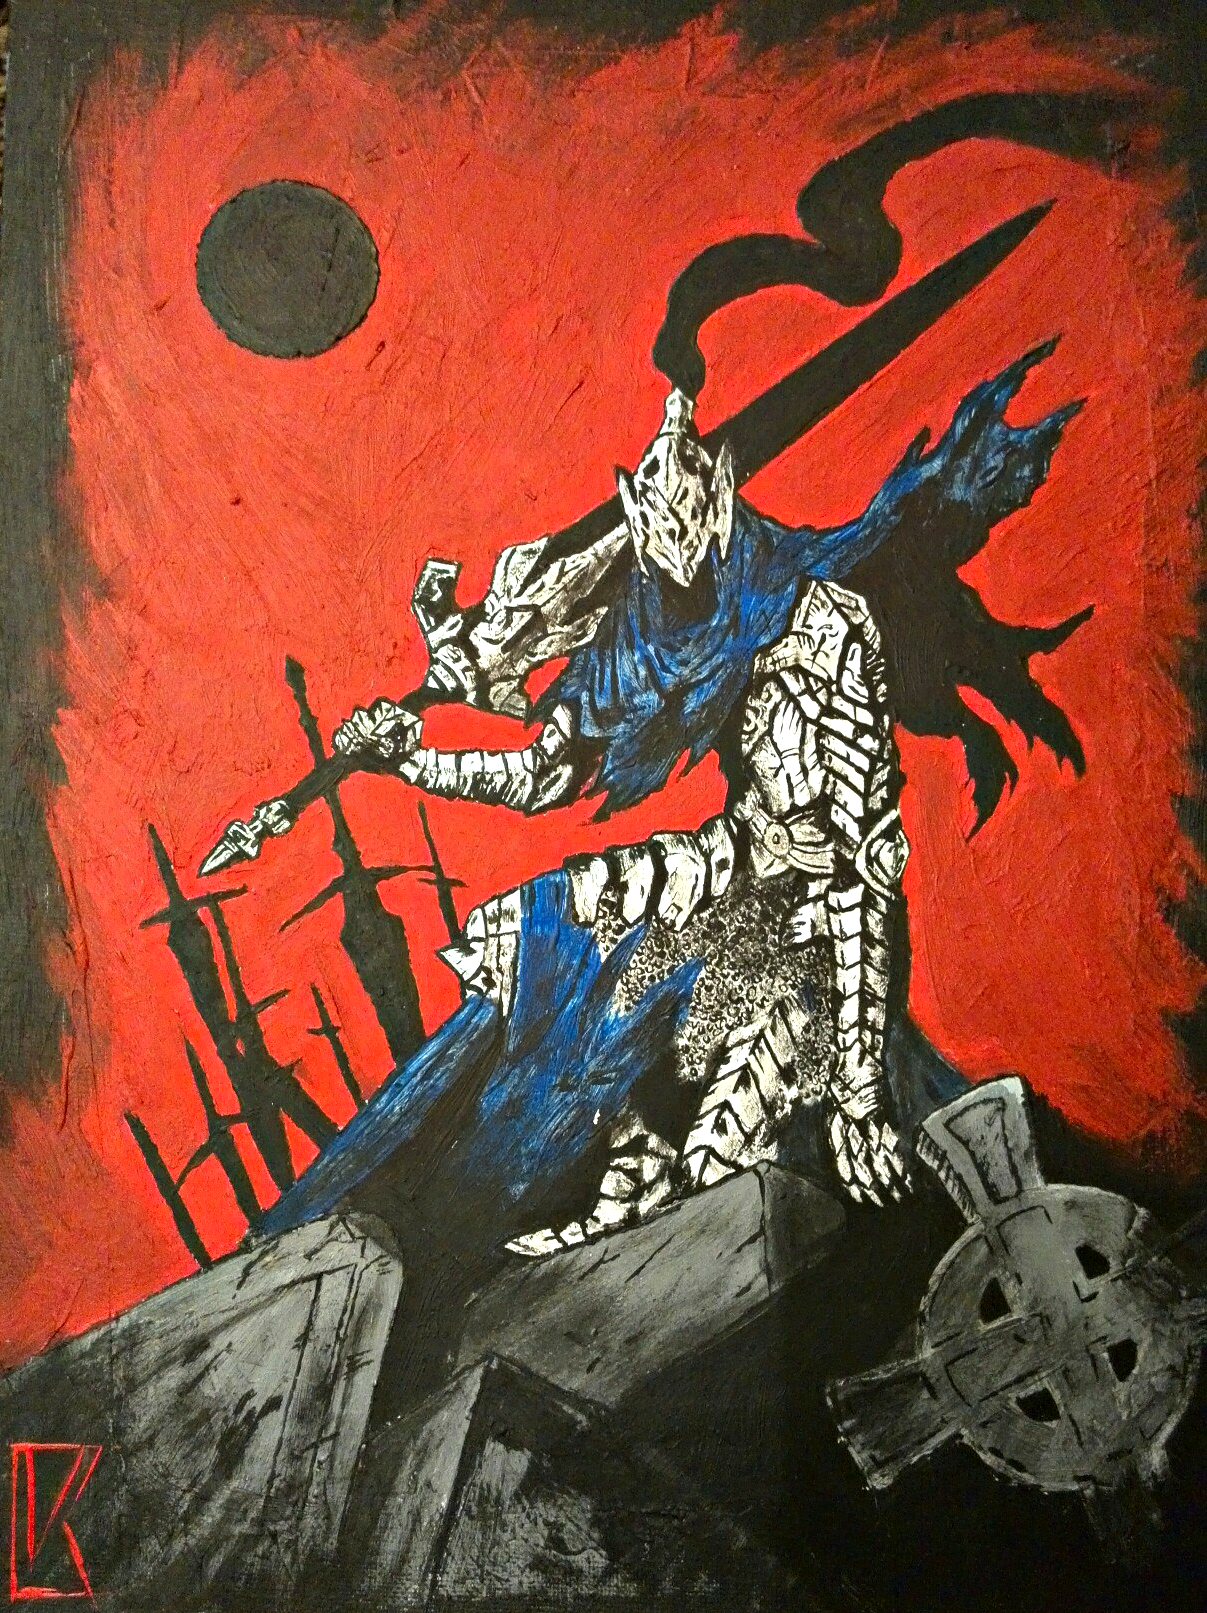 ART - Artorias the Abysswalker. - Изображение 1